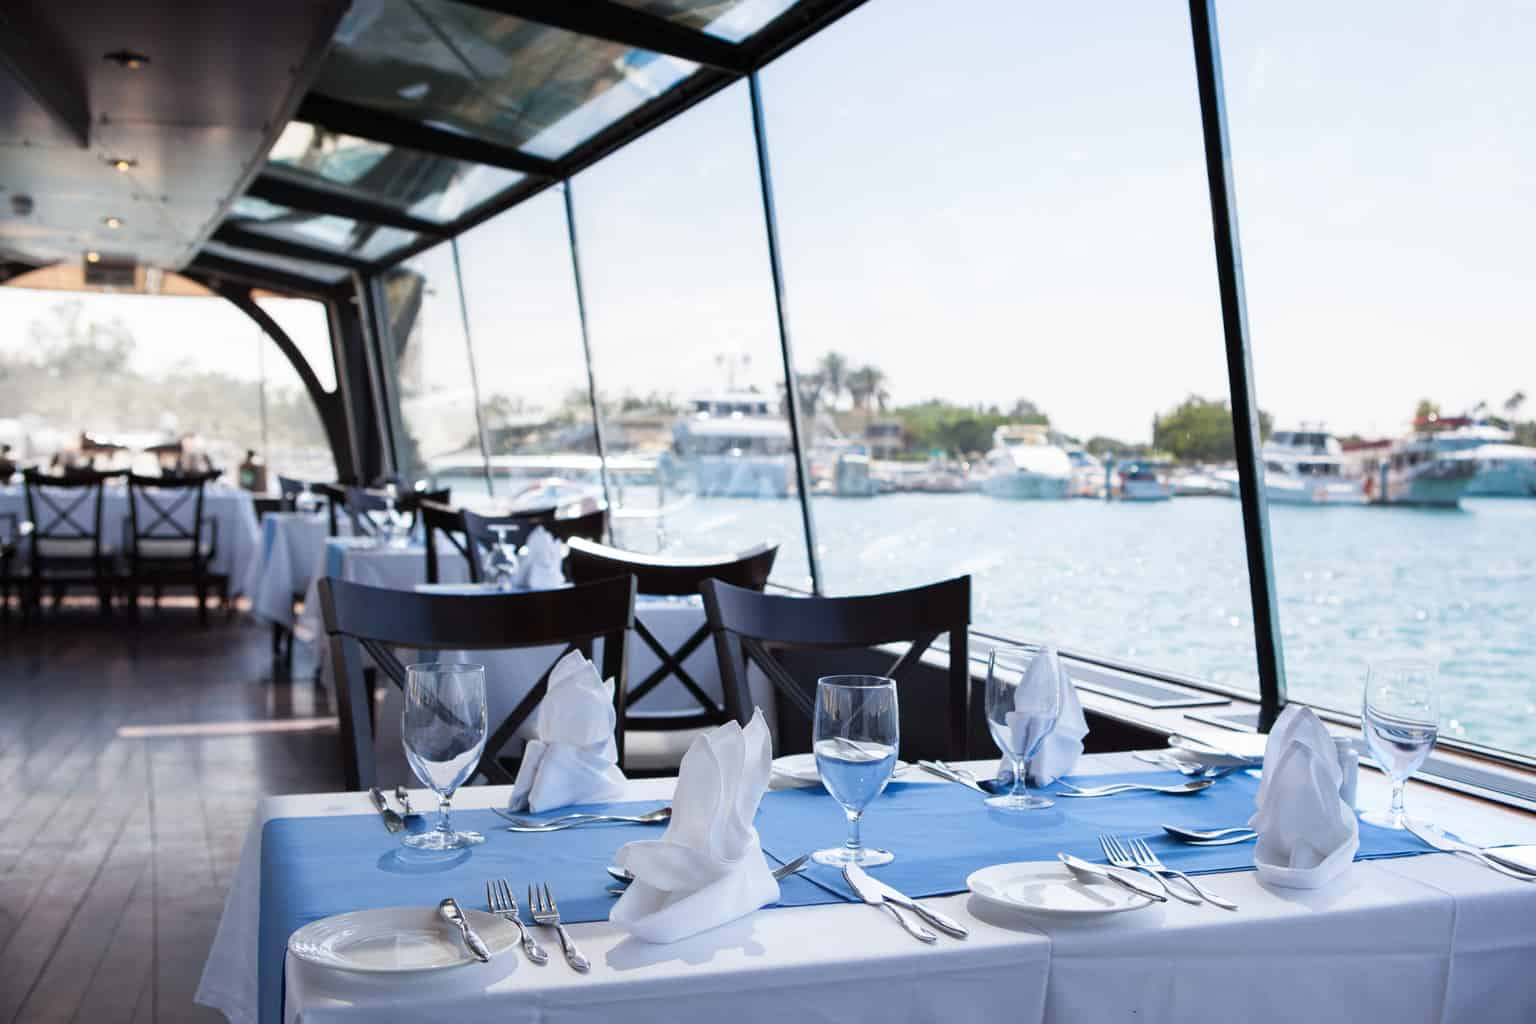 Dining overlooking the water